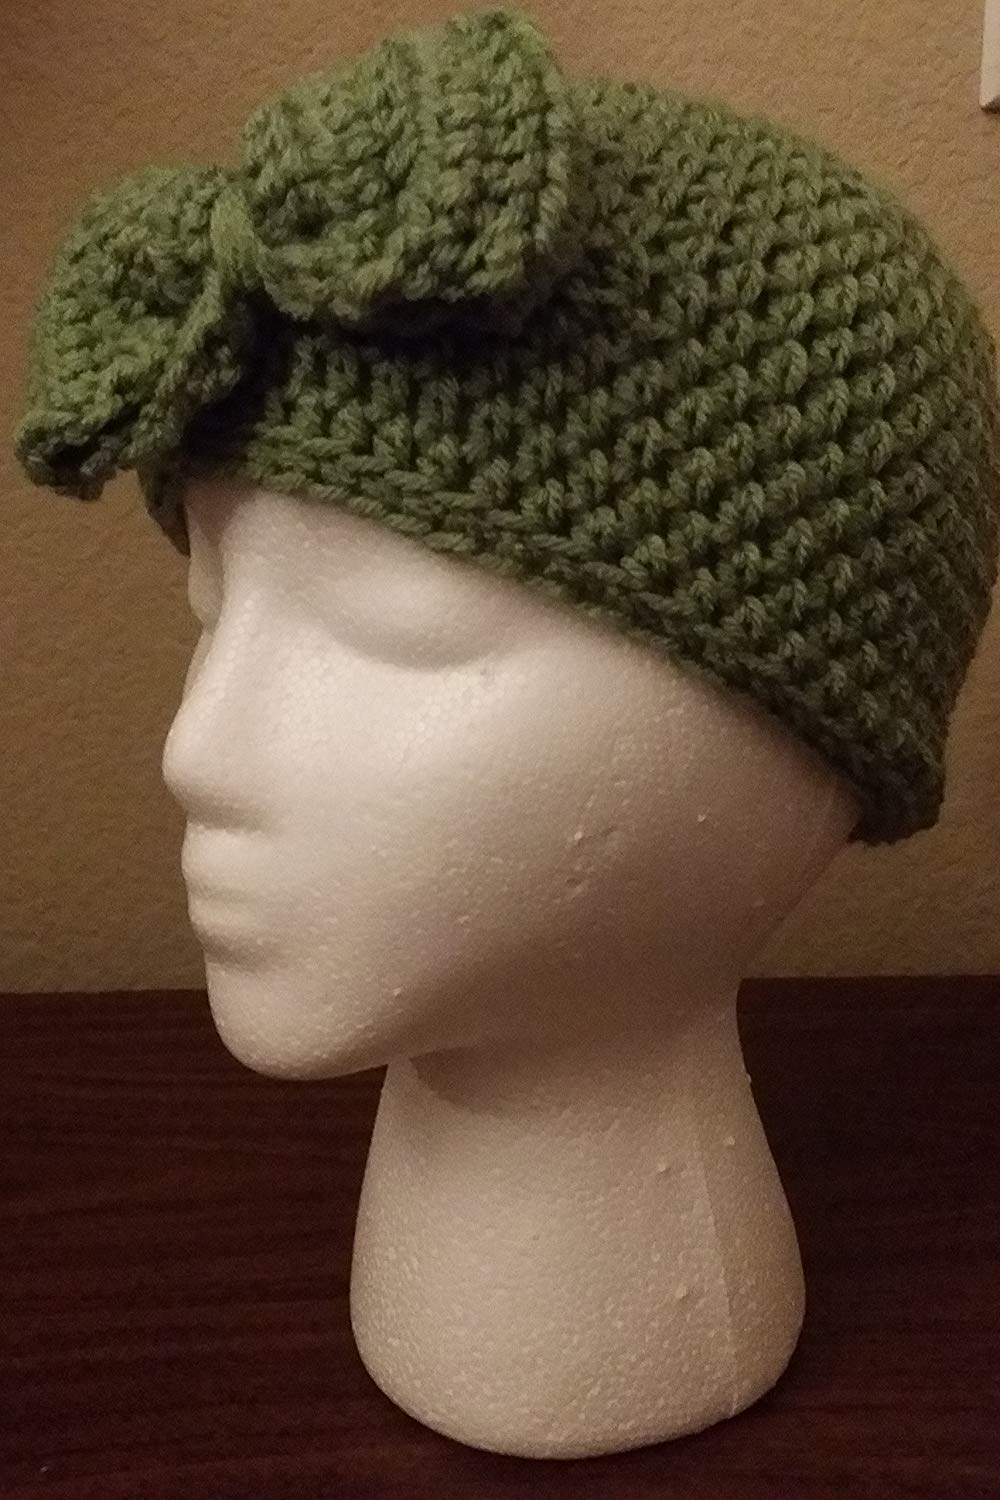 fff5f19f546 Get Quotations · Handmade Crochet Sage Green colored beanie cap with Bow  Adult Size hat